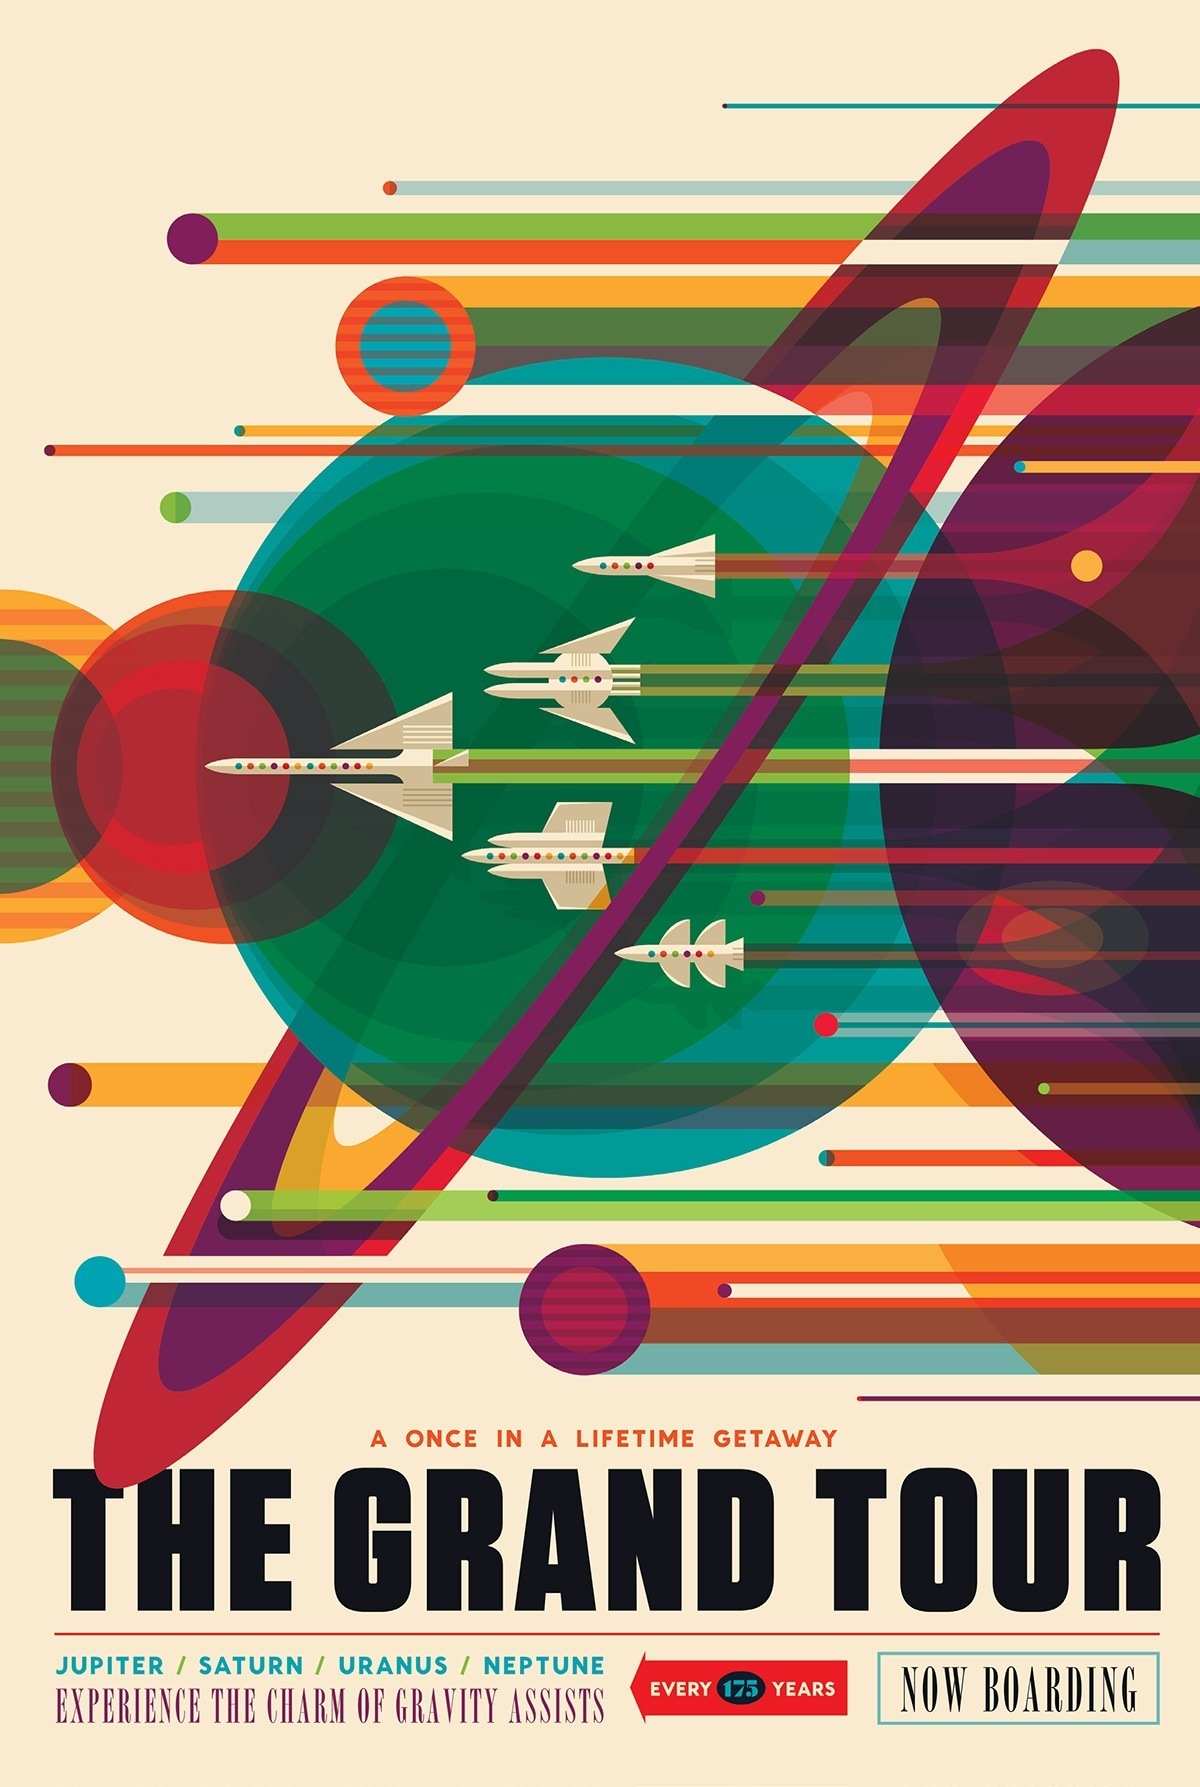 grand_tour poster by NASA